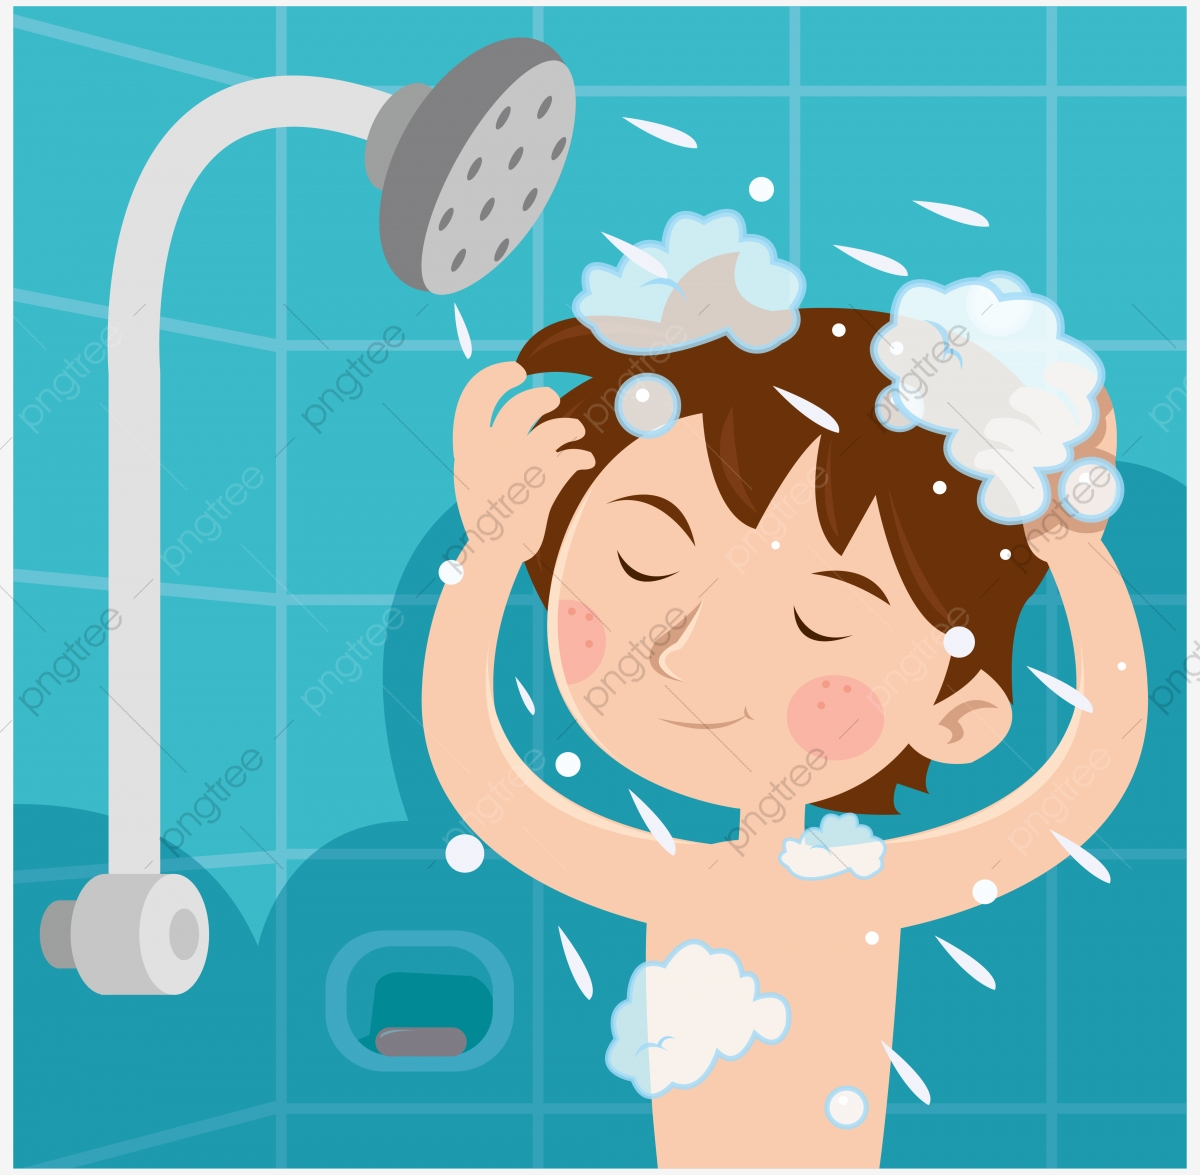 Image result for copyright free image of shower